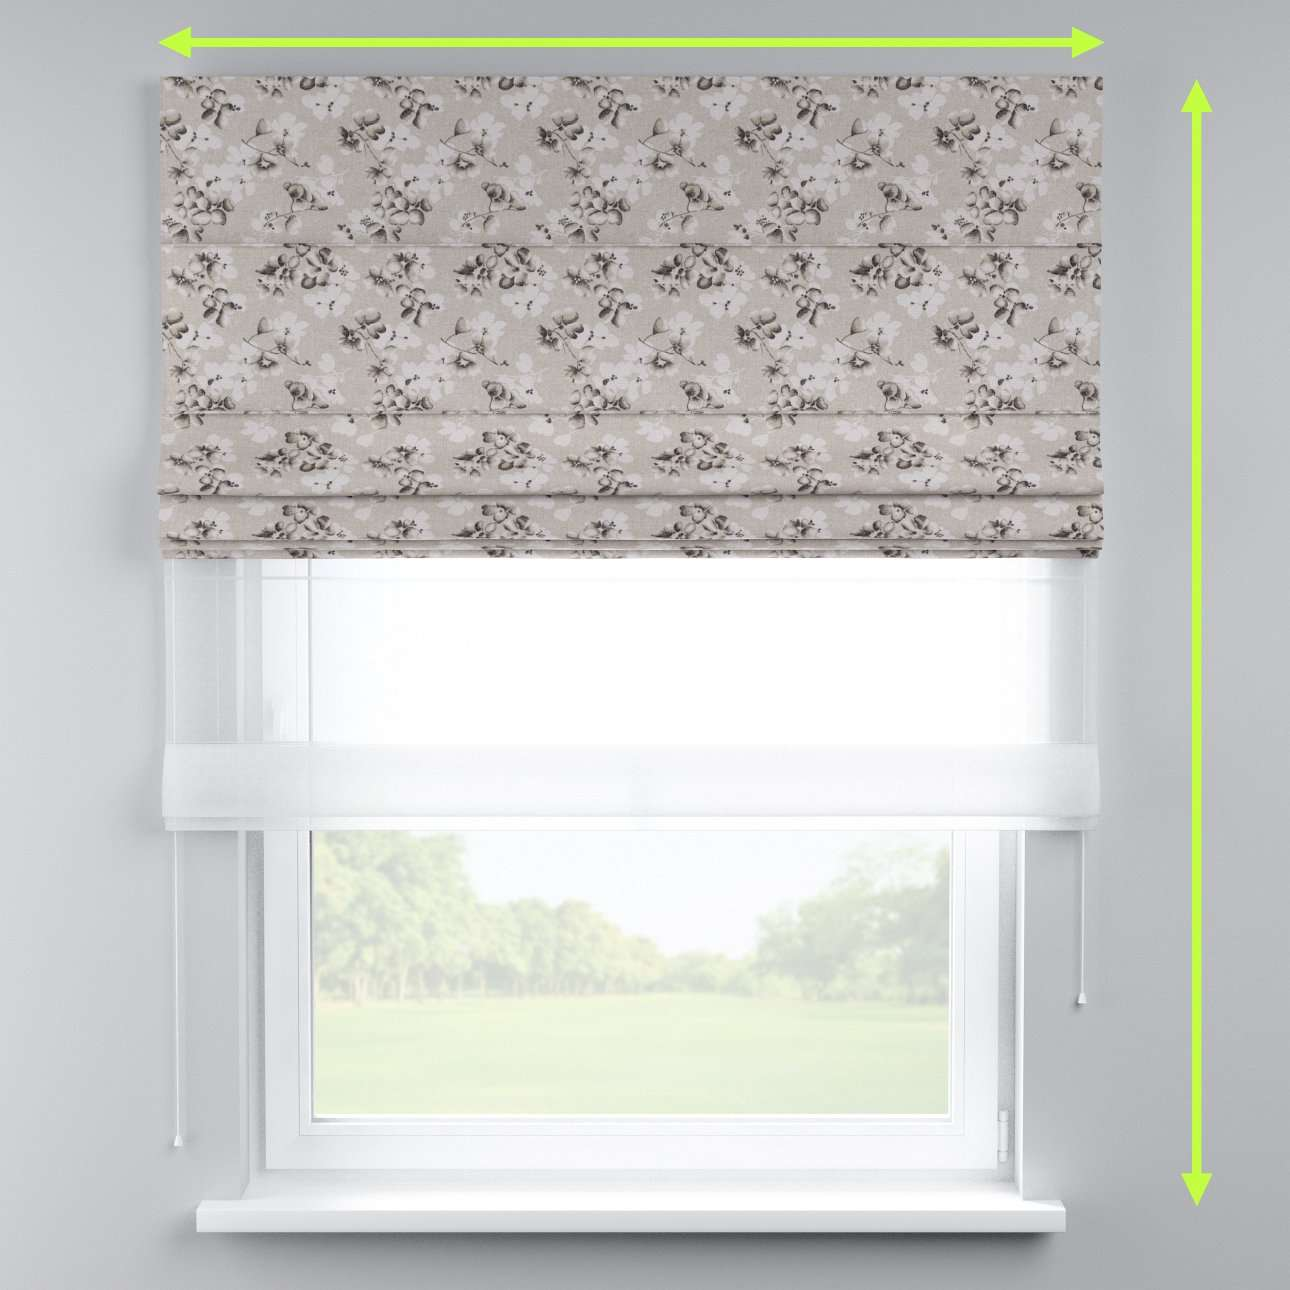 Voile and fabric roman blind (DUO II) in collection Rustica, fabric: 138-14